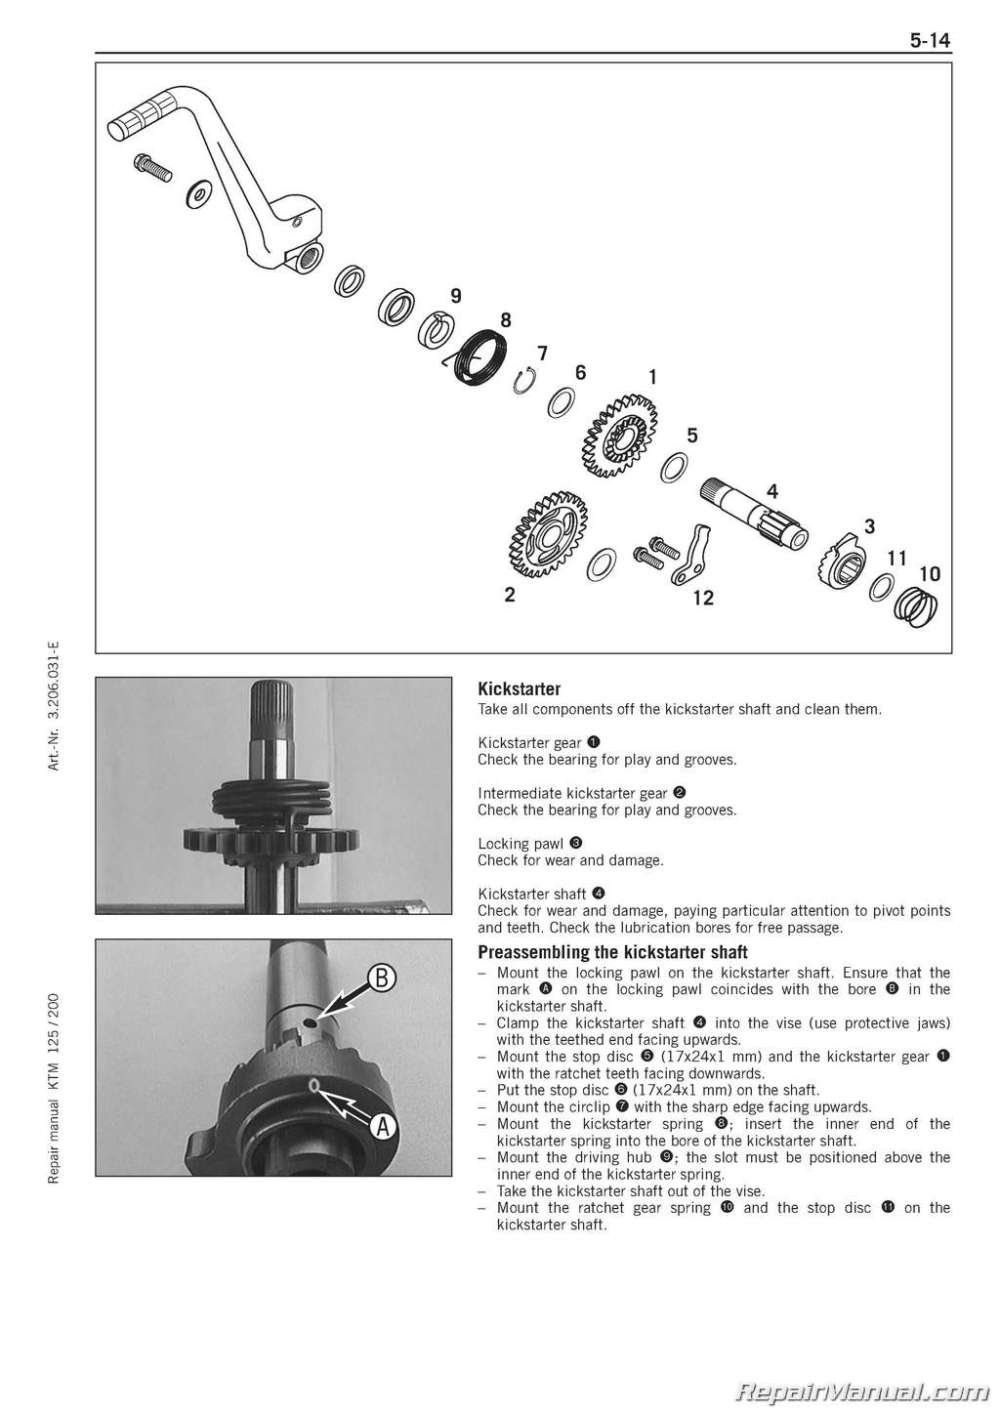 medium resolution of 1999 2006 ktm 125 200 two stroke motorcycle engine printed service manual